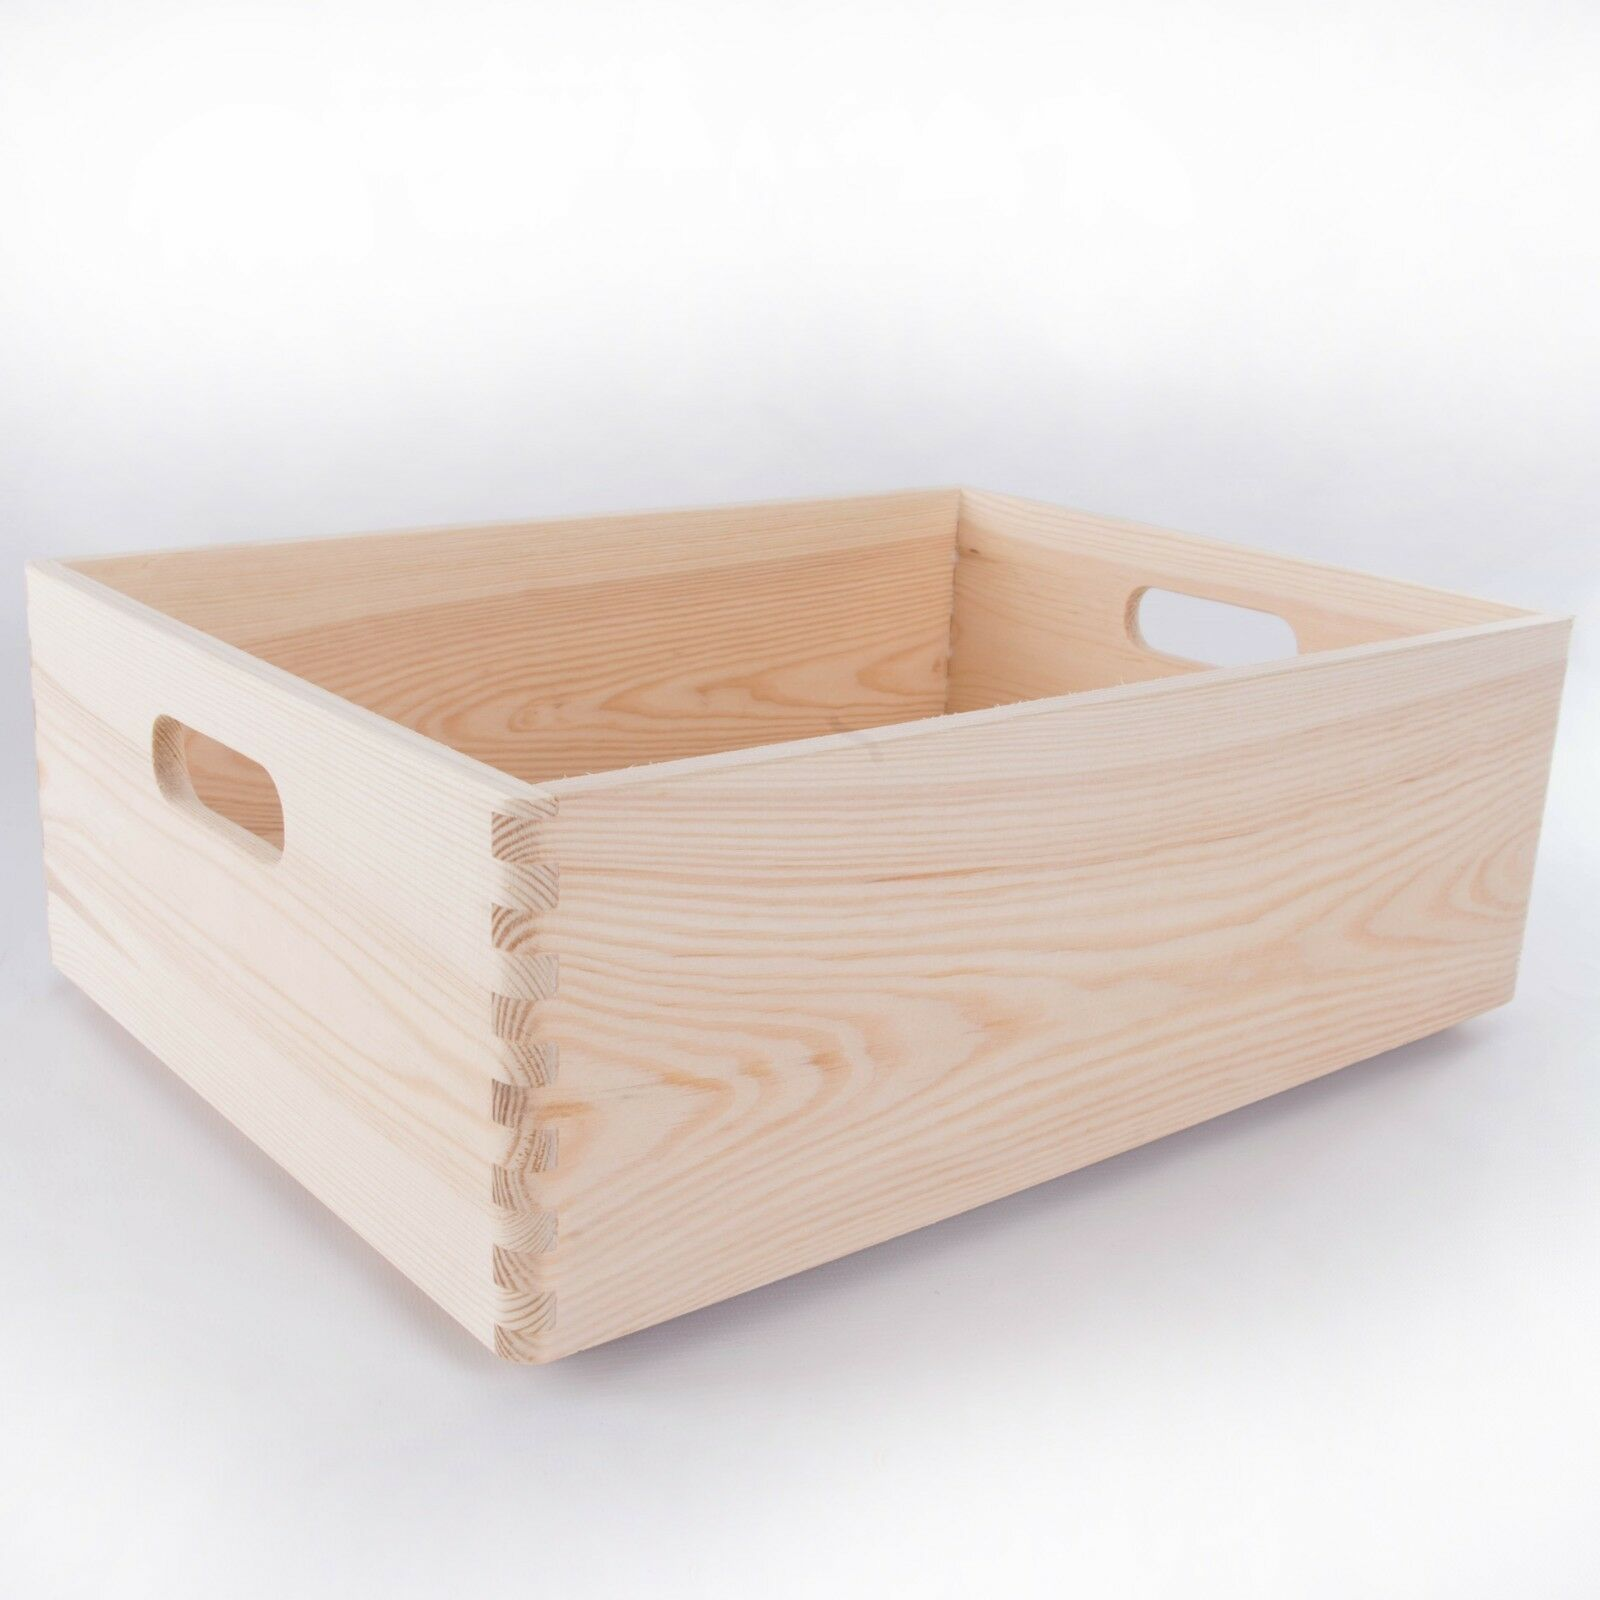 Large Wooden Storage Boxes     Plain Wood   Box with Lid   Crate Trunk Containers 792735